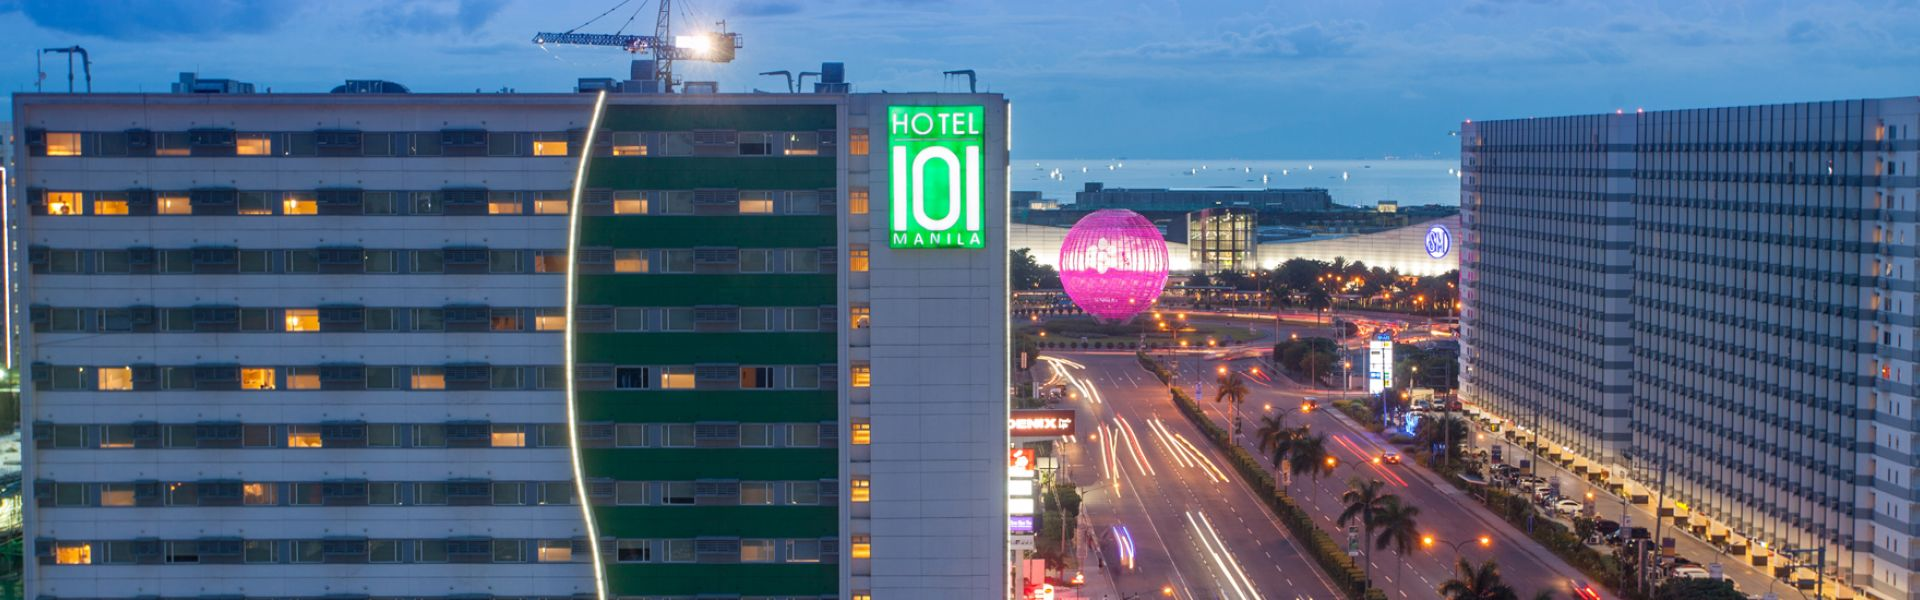 View of Hotel 101 in Manila at night